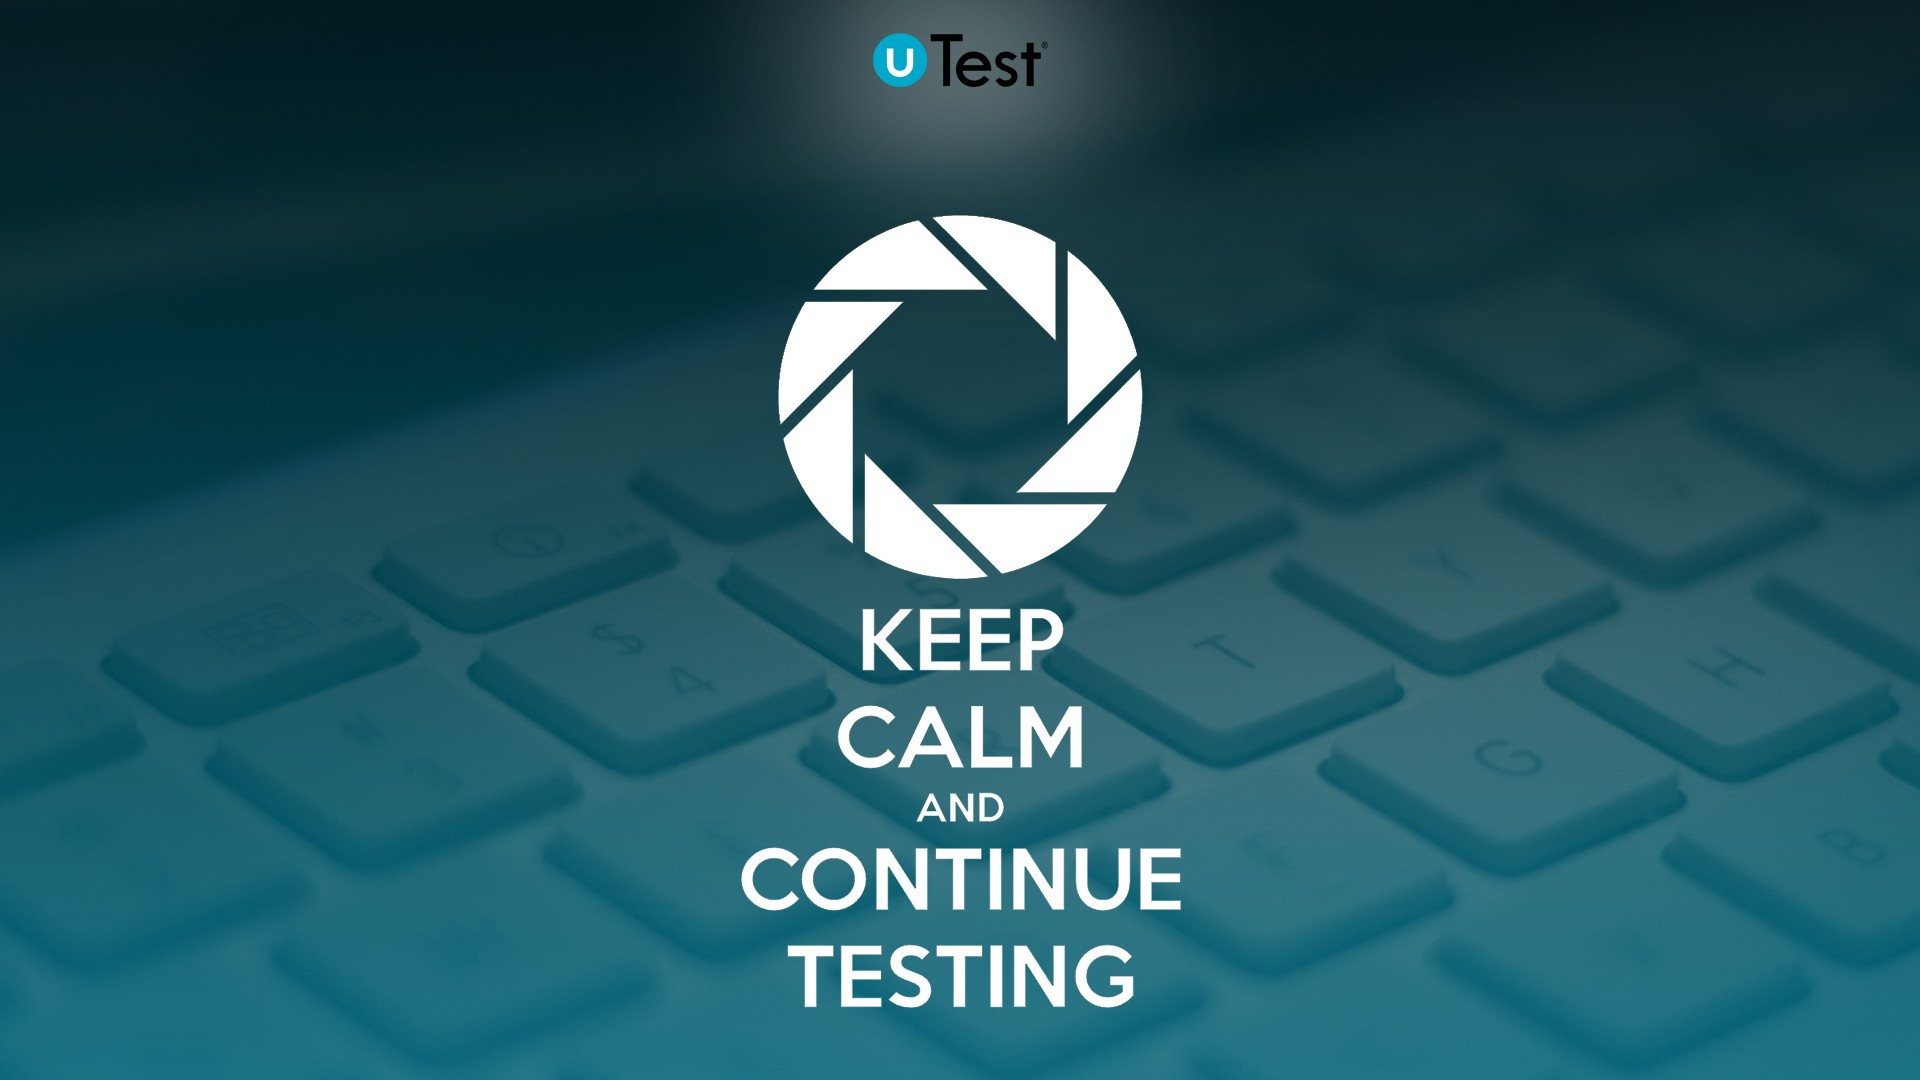 Keep Calm And Continue Testing 1600x900 Resolution